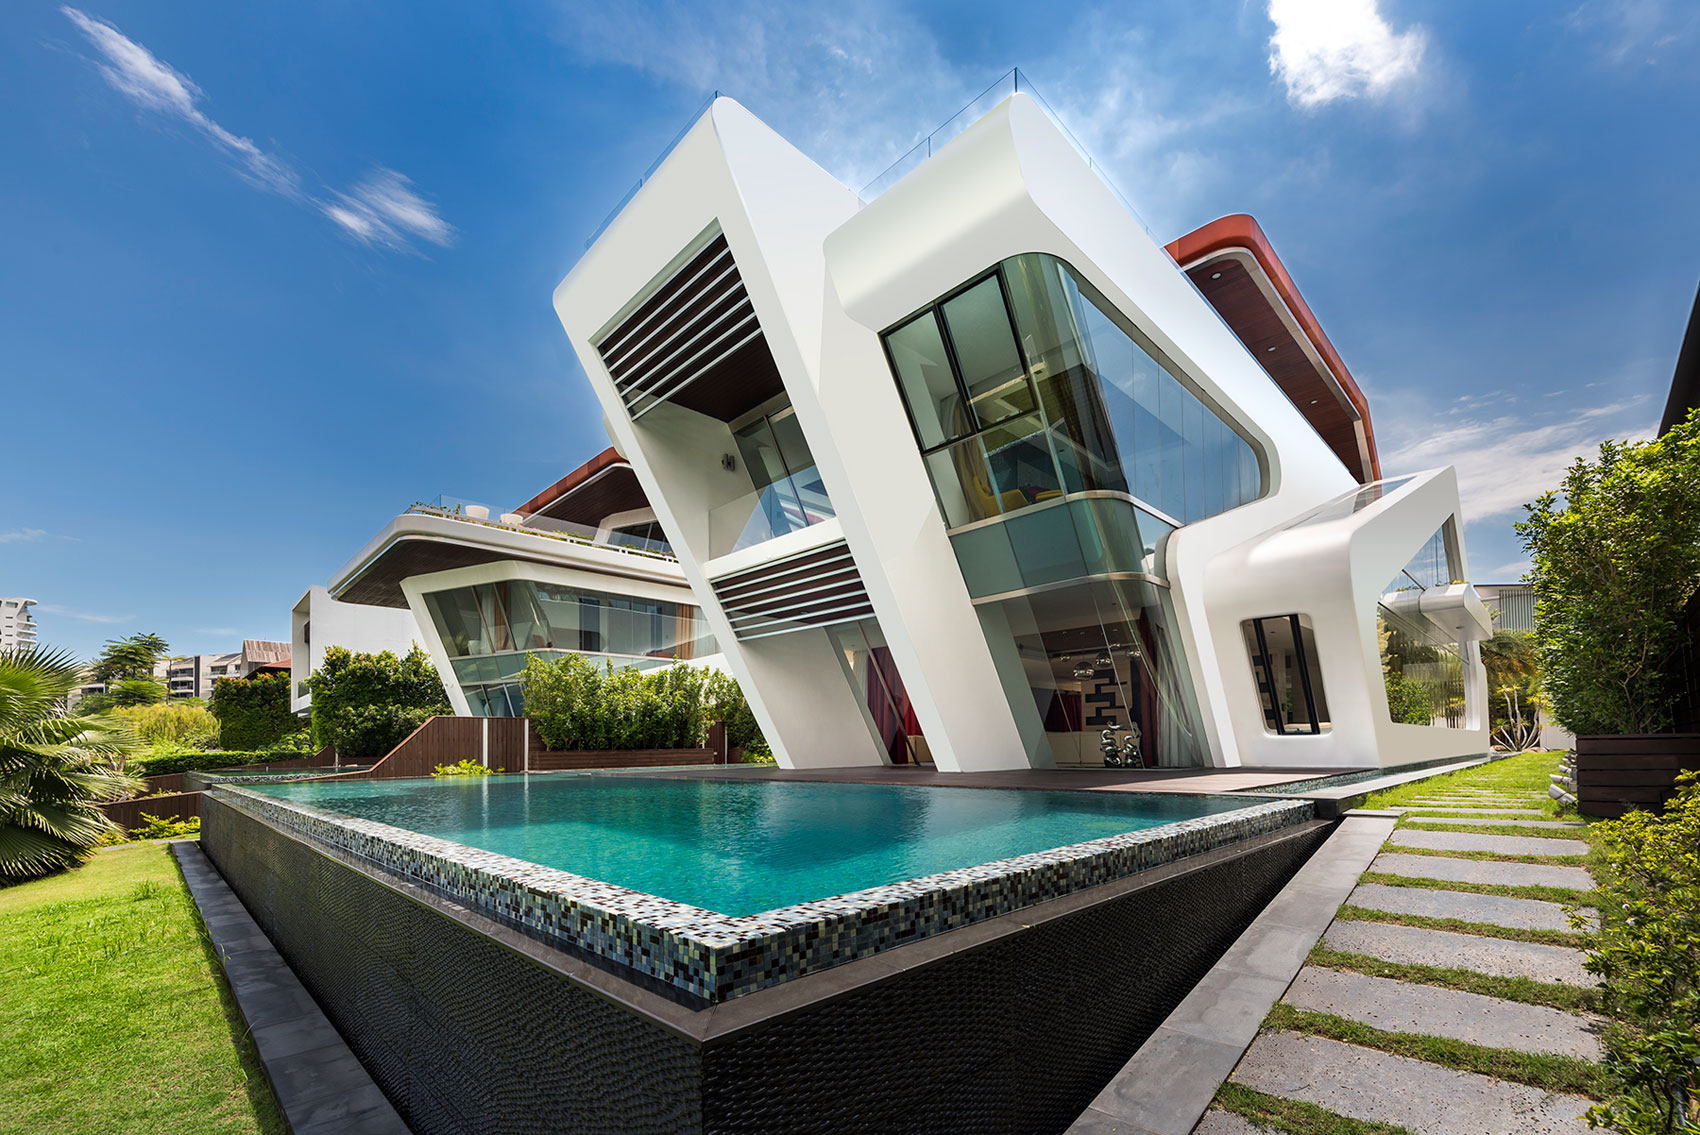 Mercurio design lab create a modern villa in singapore for Modern house villa design